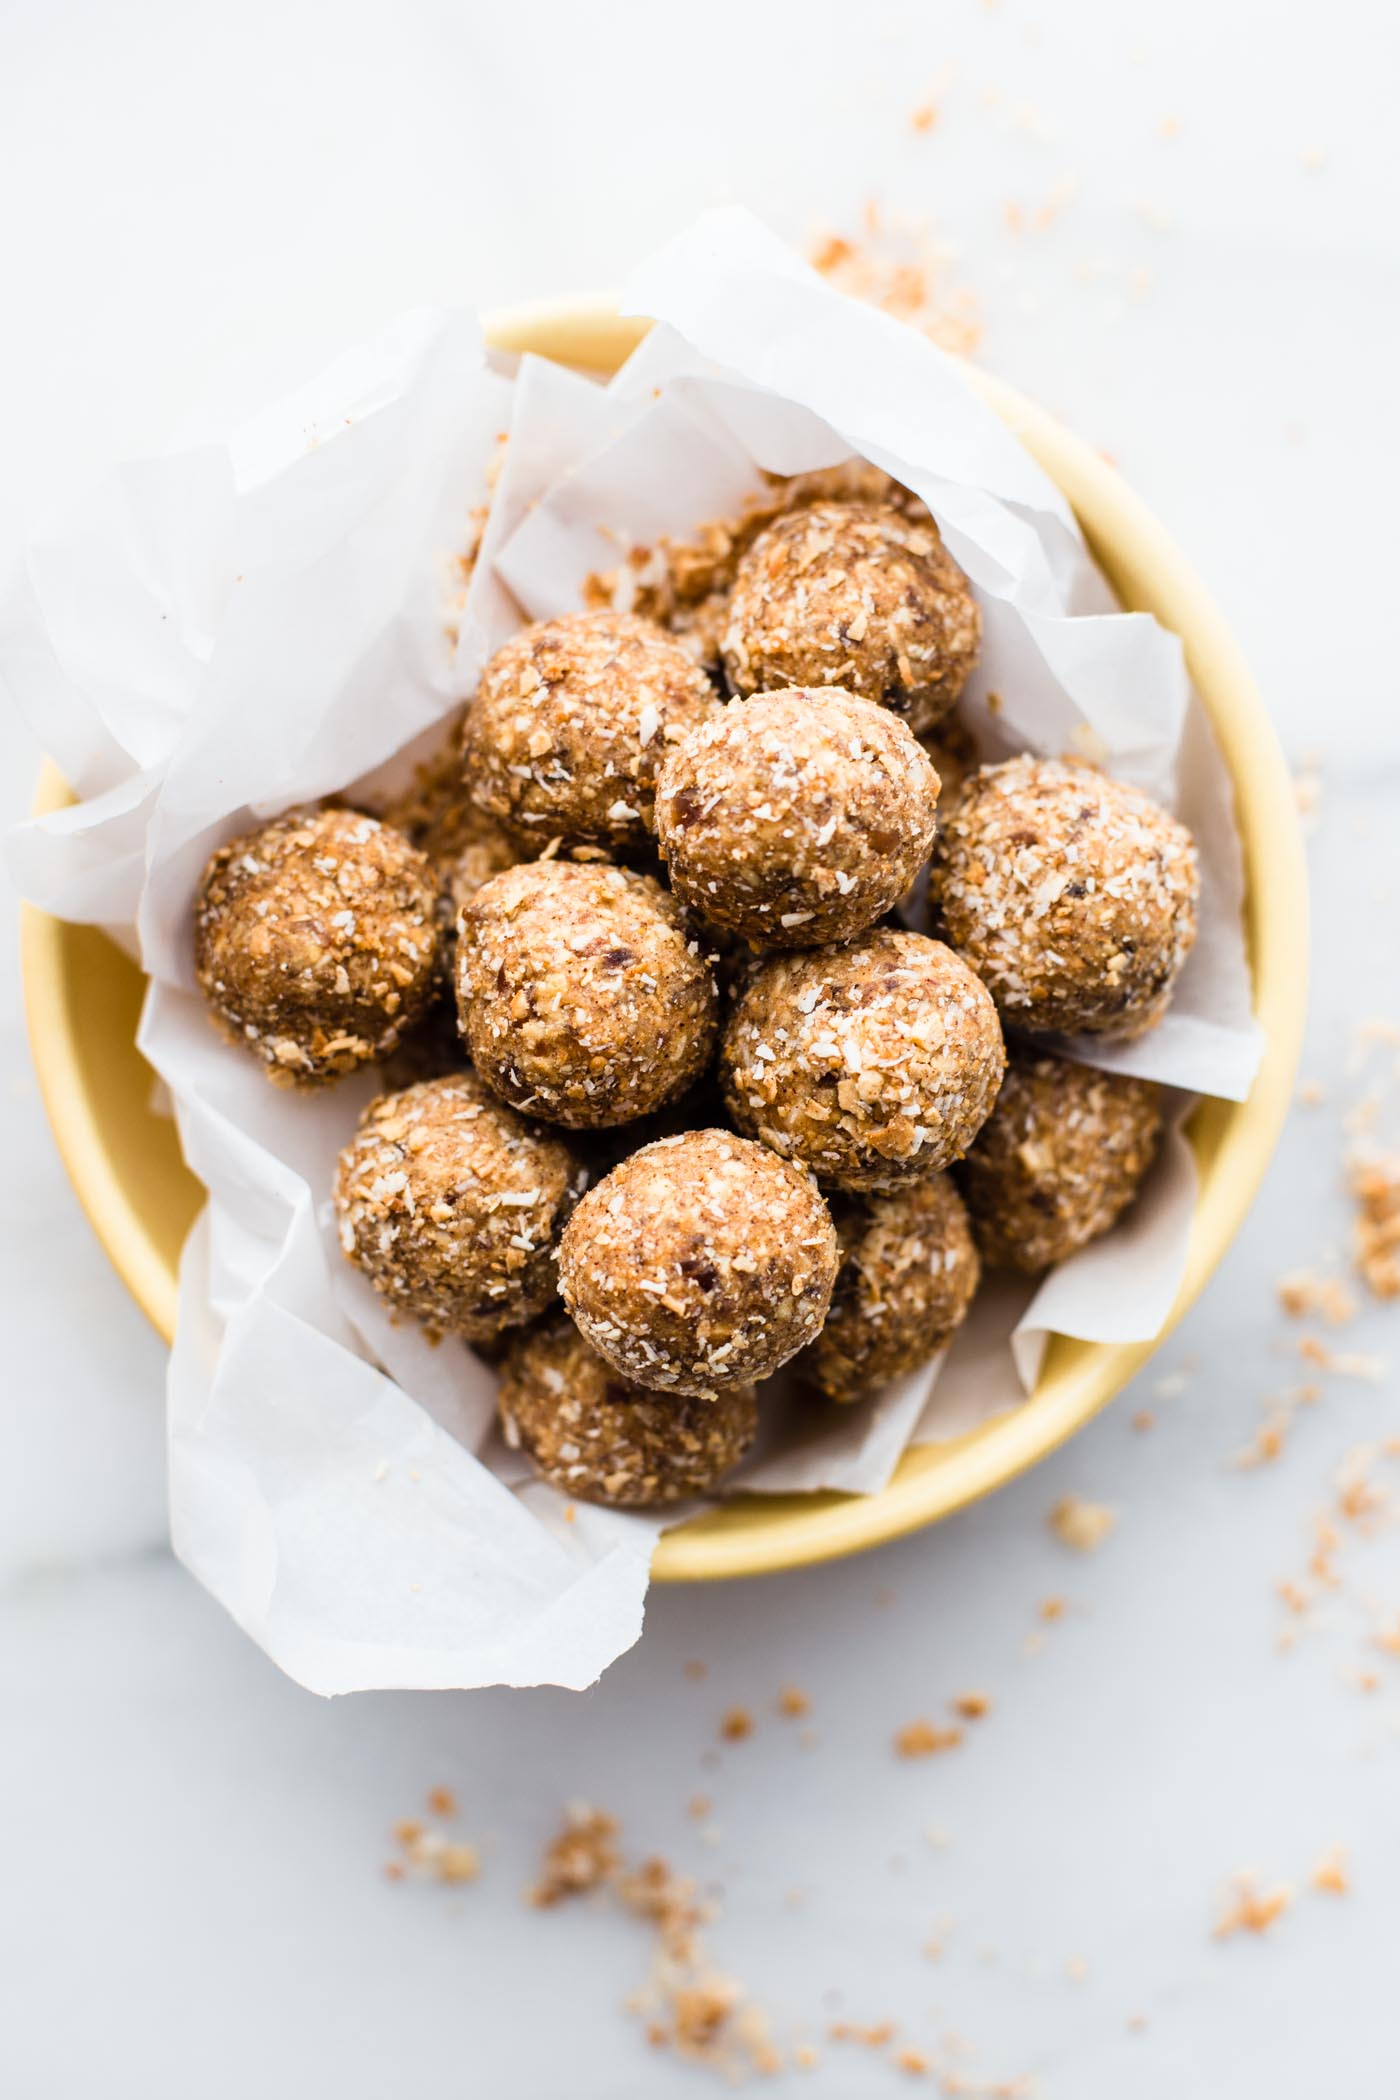 Toasted Coconut Bliss balls ya'll! A sweet and salty snack ball! Oh my! Paleo and Vegan friendly, crunchy, chewy, the perfect treat! Make for yourself or even for holiday festivities! Get the BLISSFUL recipe www.cottercrunch.com